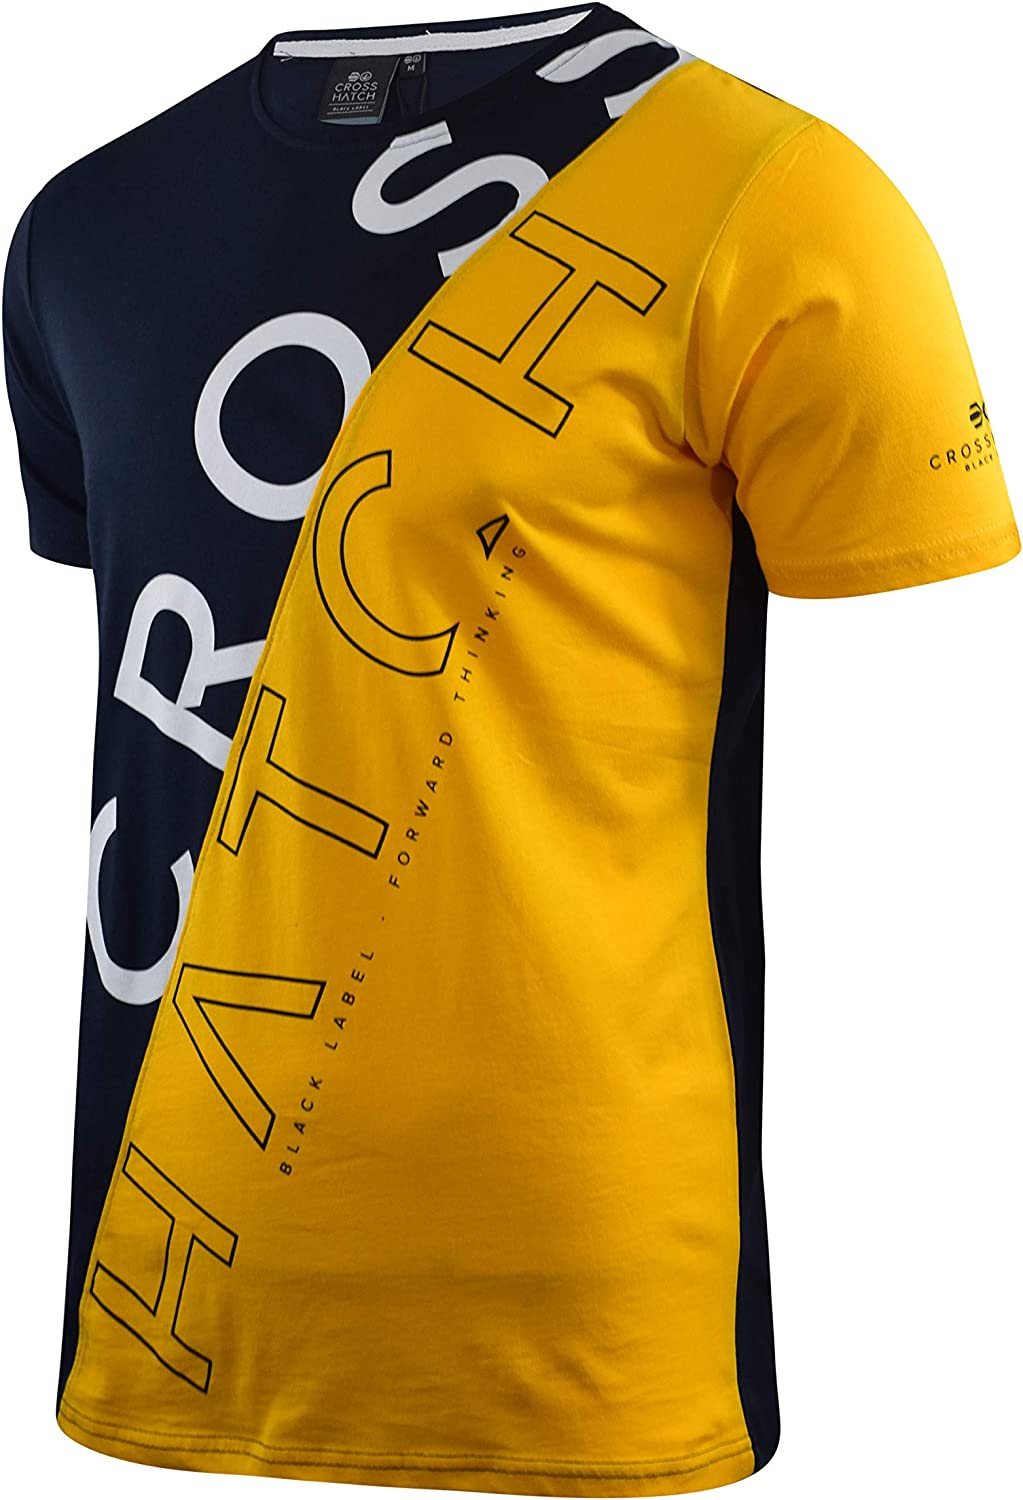 Mens Crosshatch T-Shirt Crew Neck Diag Contrast Top Tee Navy/Yellow Bt